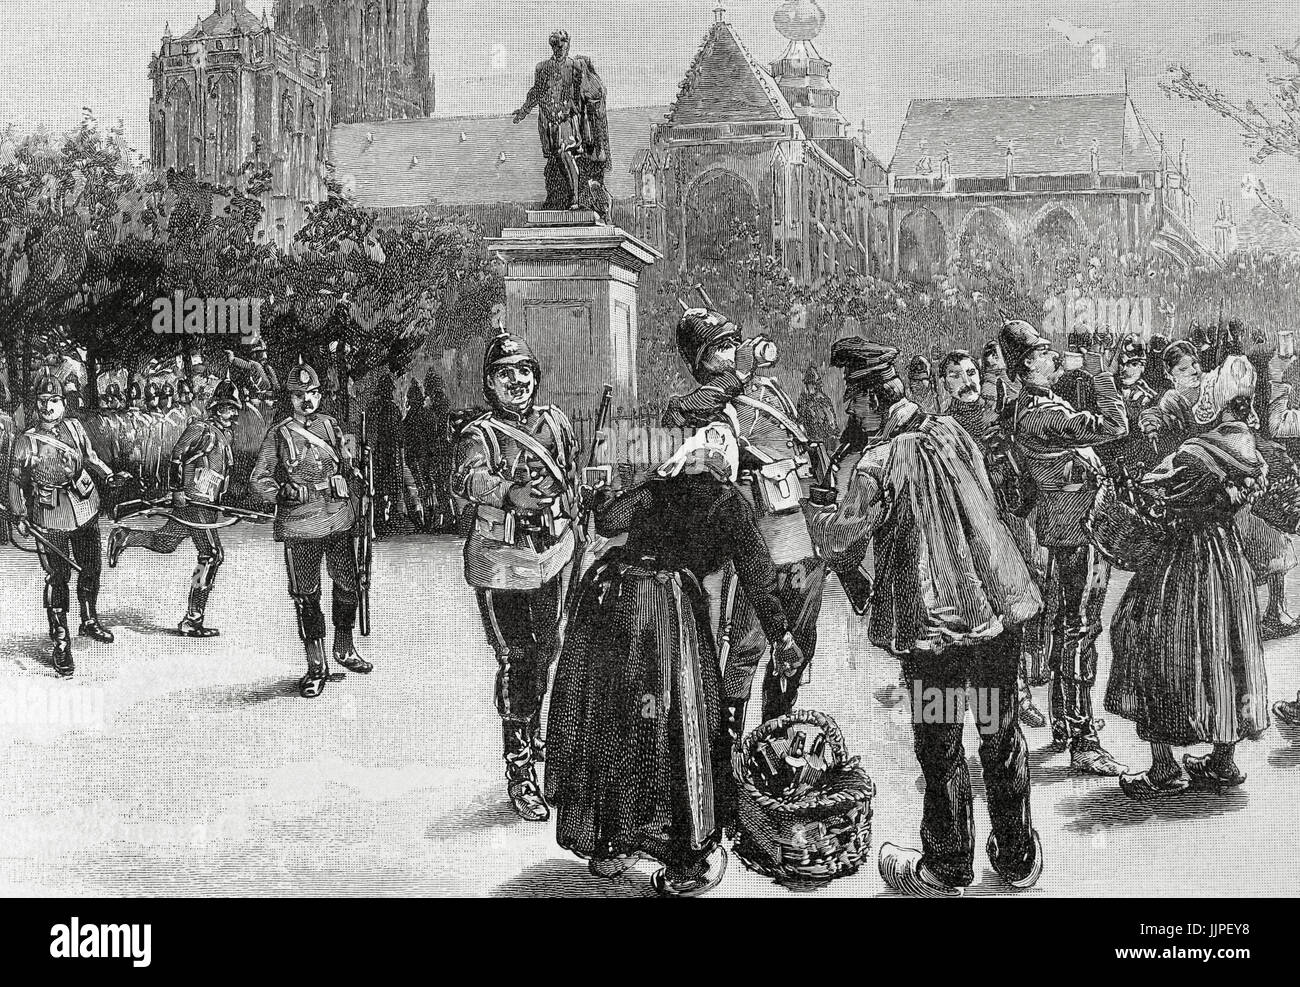 The Great War of 1892. English troops at Verte Square, Antwerp. Engraving in The Artistic Illustration, 1892. - Stock Image